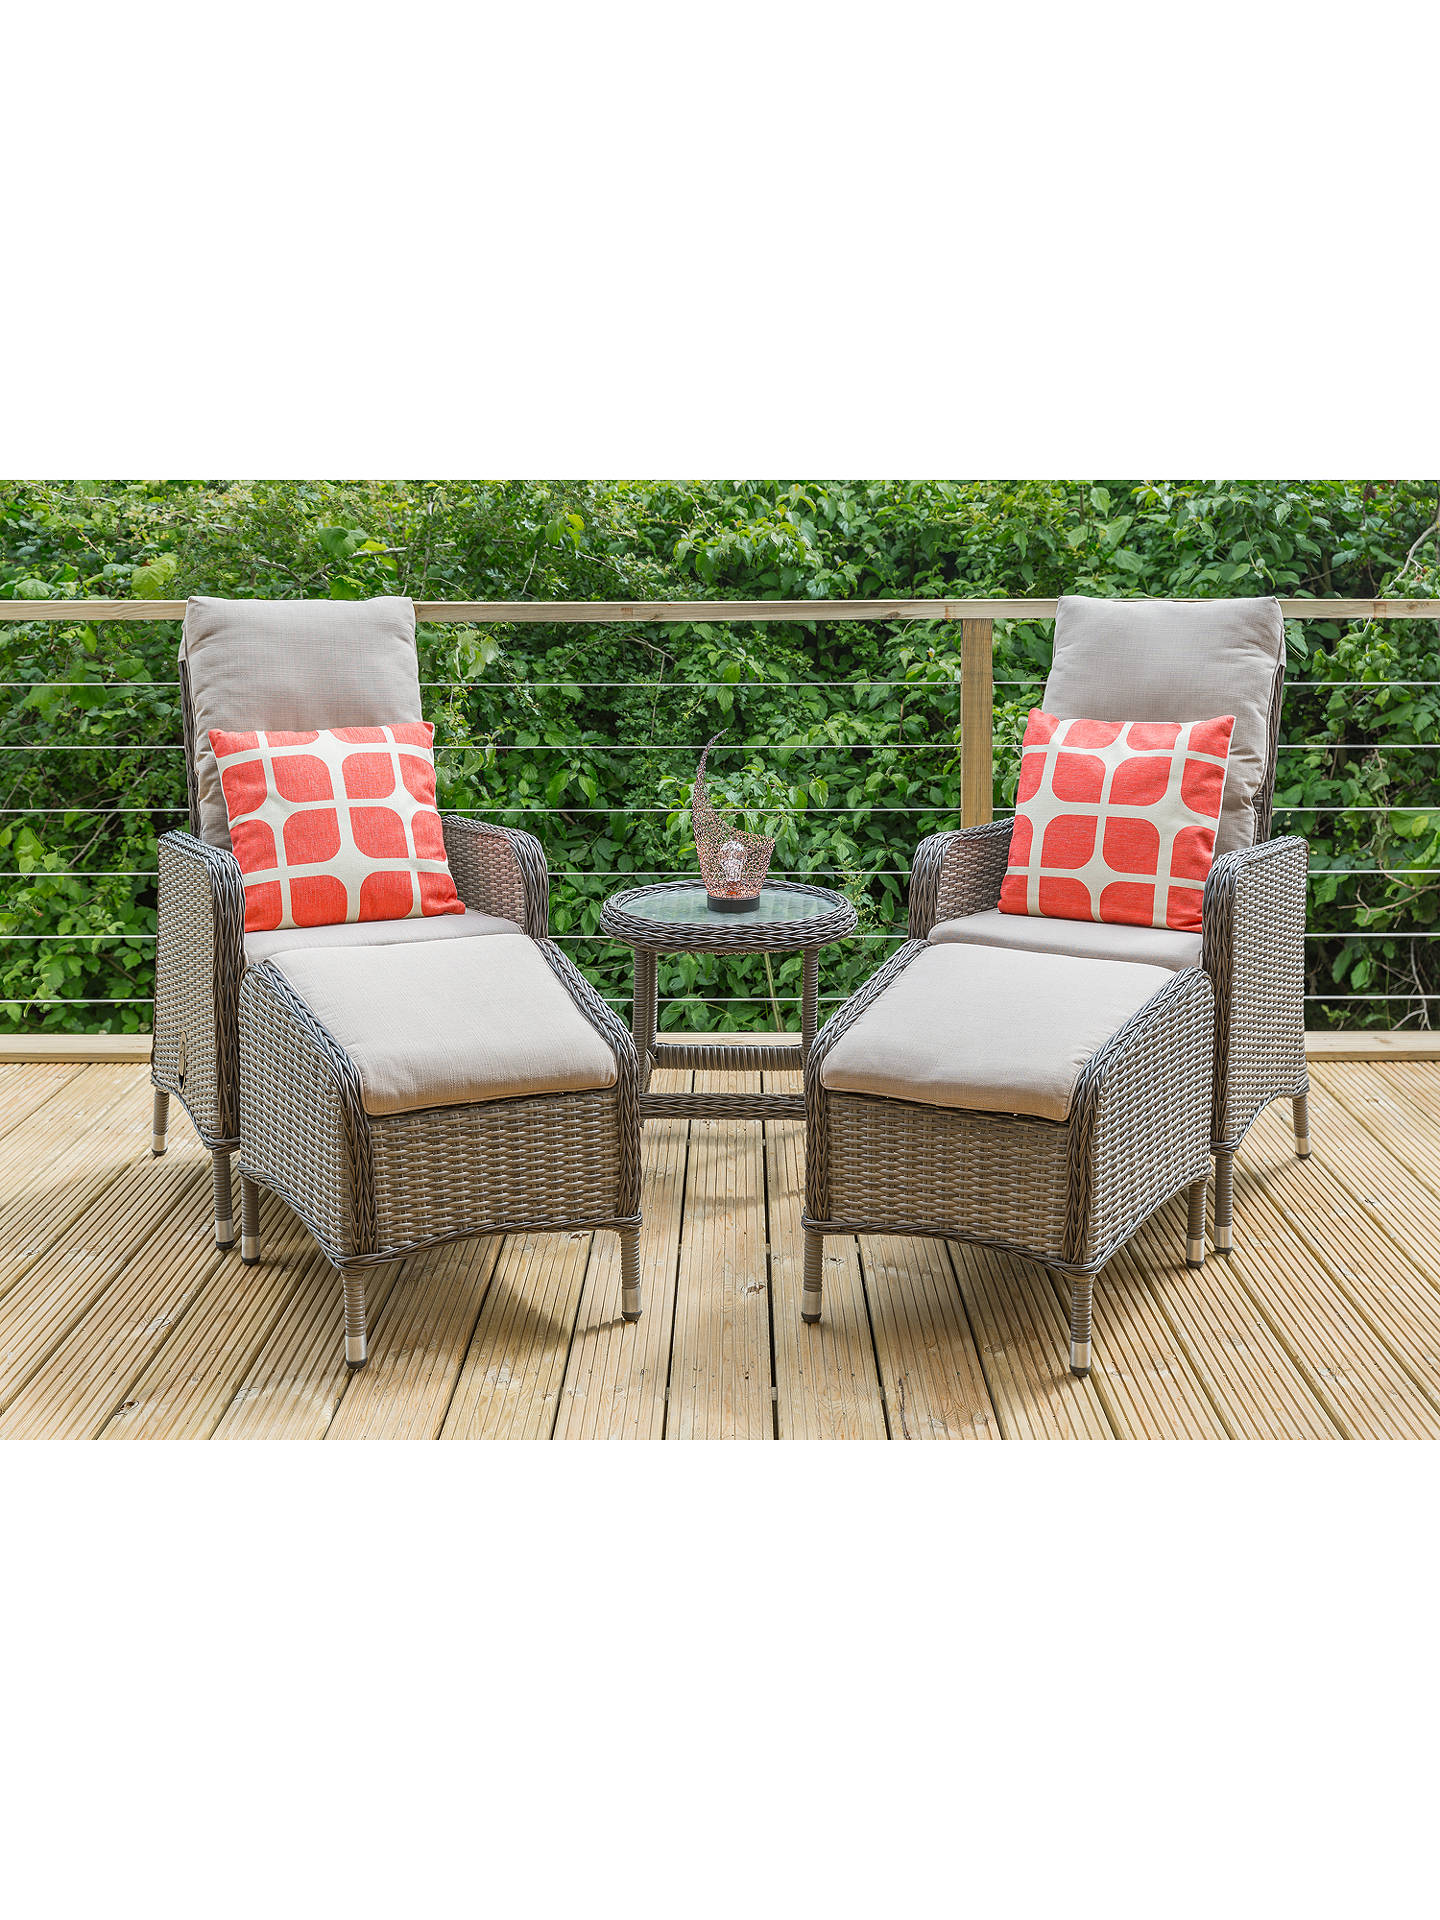 Fabulous Lg Outdoor Marseille 2 Seater Reclining Garden Chairs With Footstools And Side Table Set Natural Unemploymentrelief Wooden Chair Designs For Living Room Unemploymentrelieforg